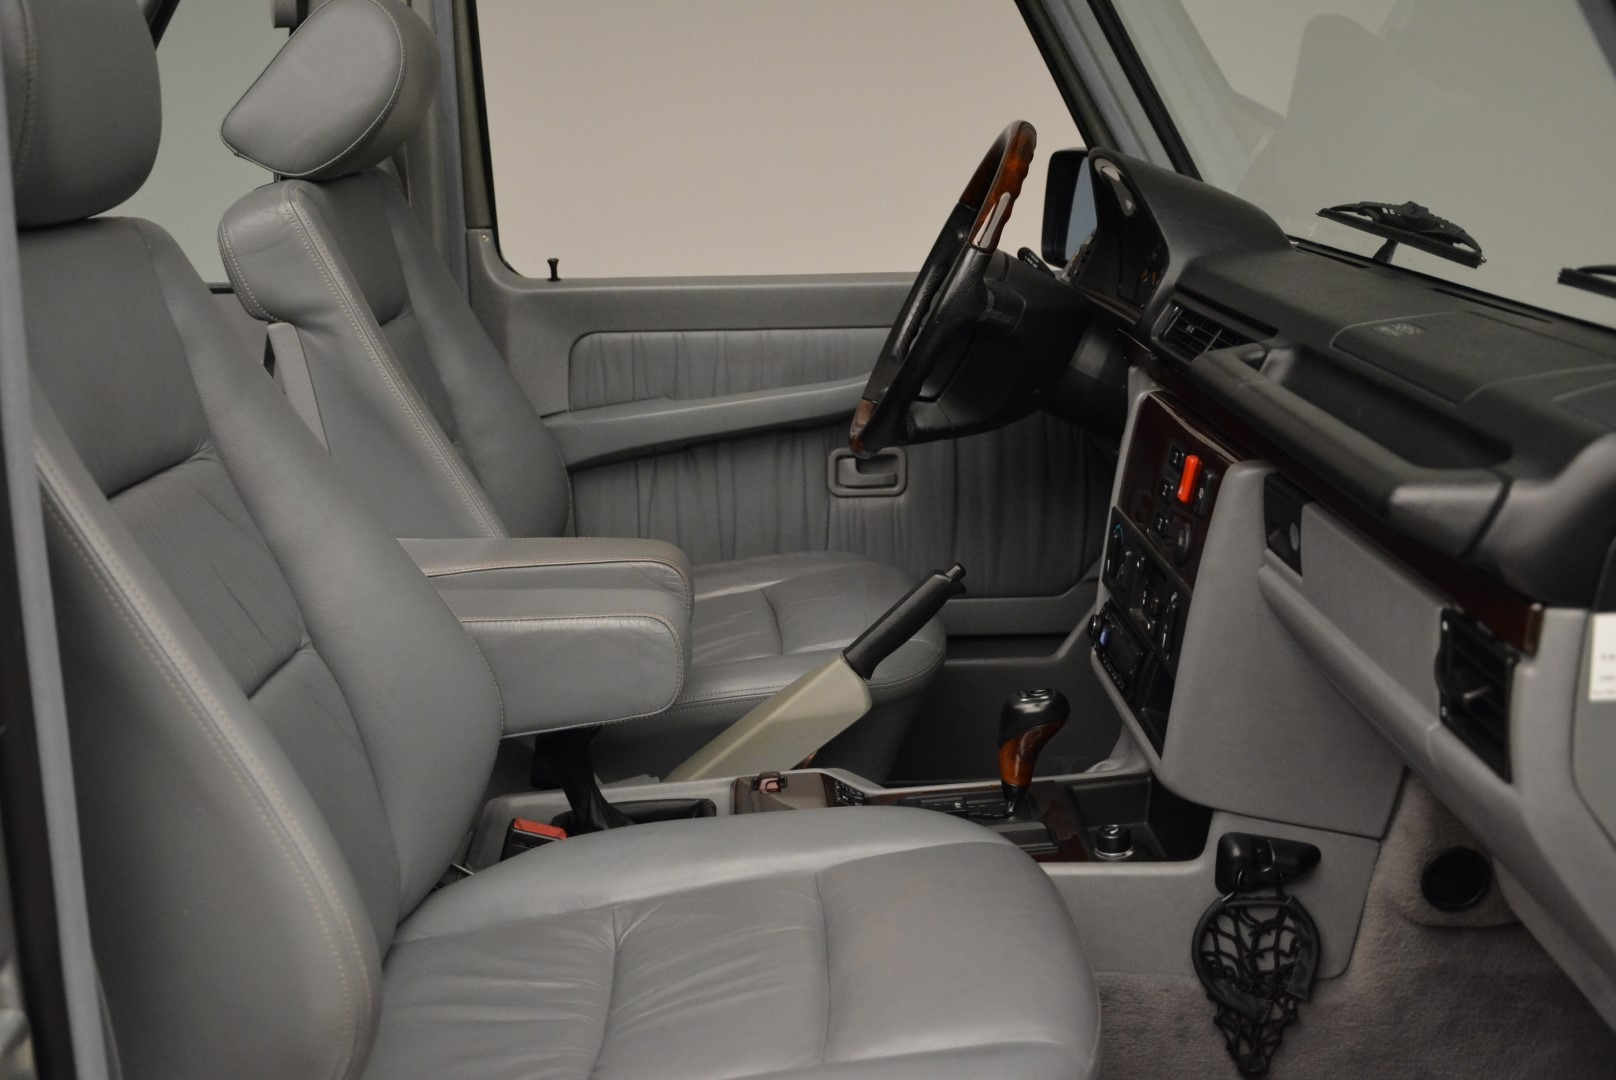 Used 1999 Mercedes Benz G500 Cabriolet For Sale In Greenwich, CT 1961_p27